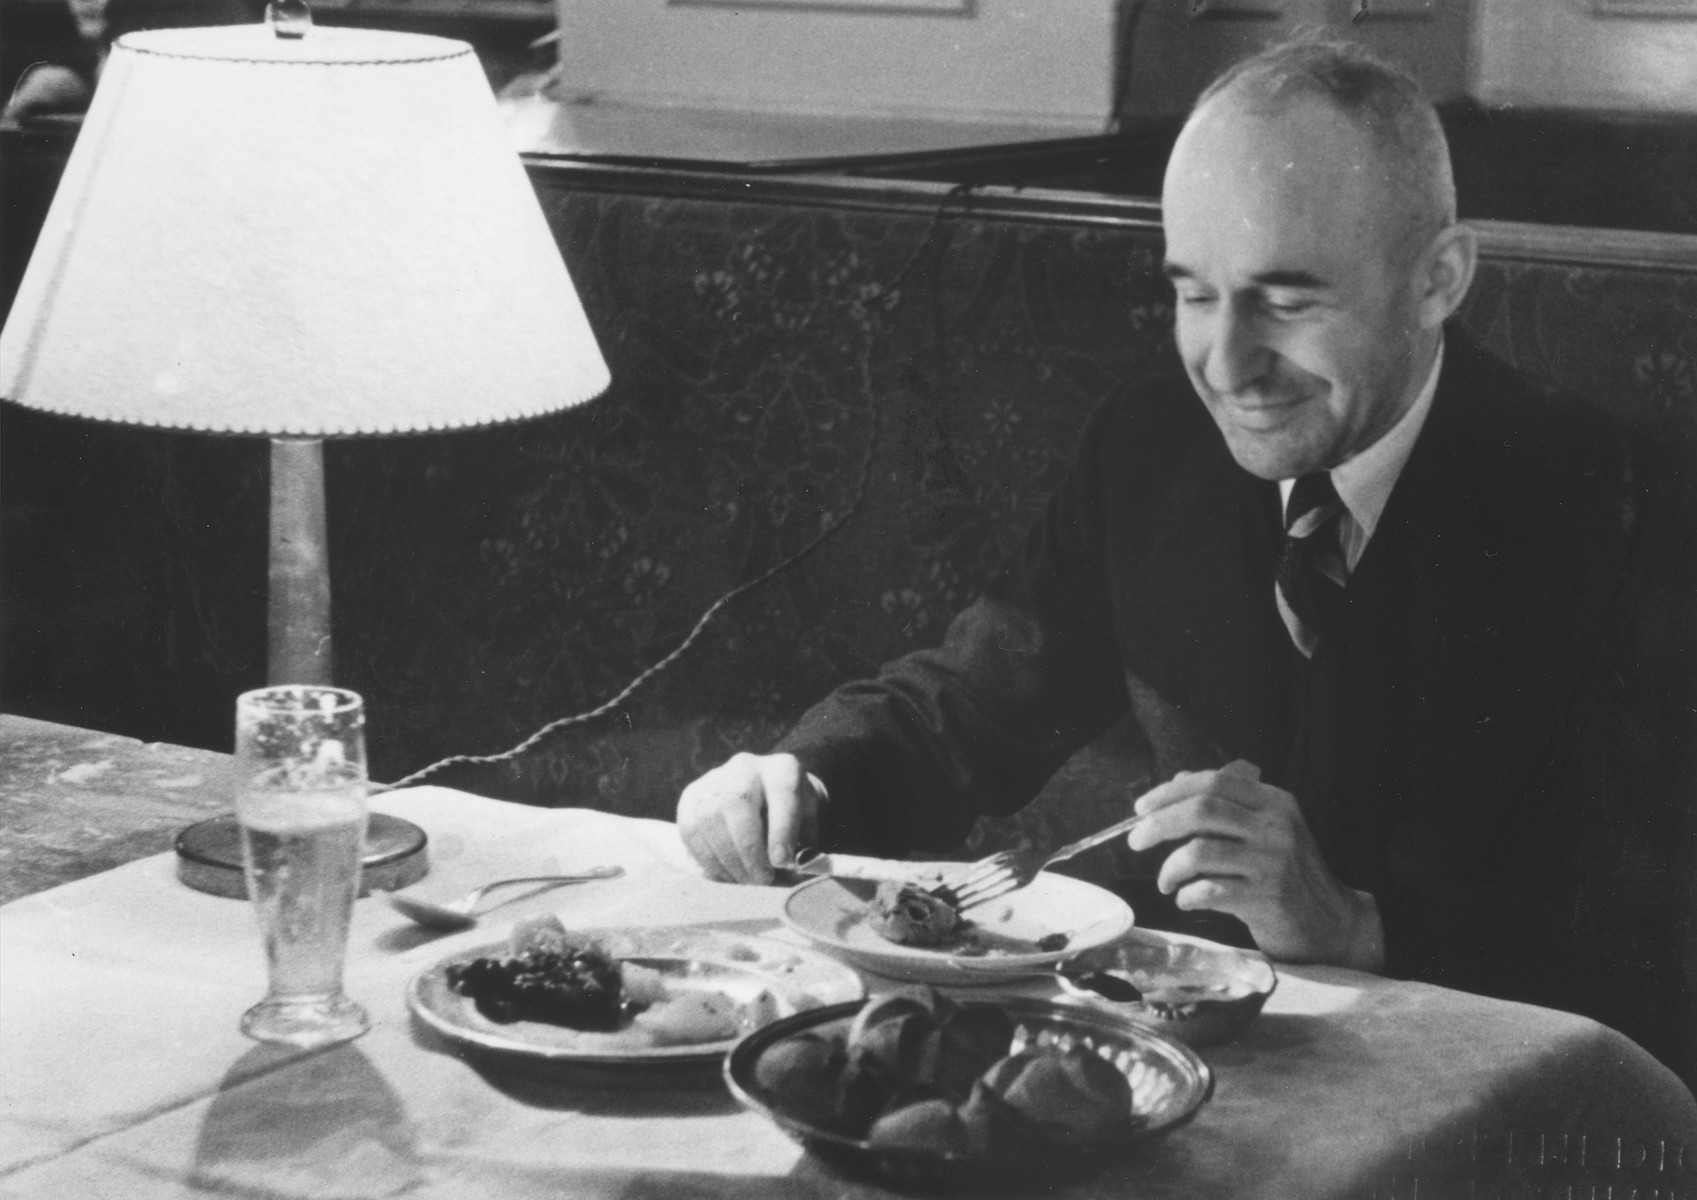 Jewish restauranteur Arthur Mayer eats a meal at his coffee house in Vienna.